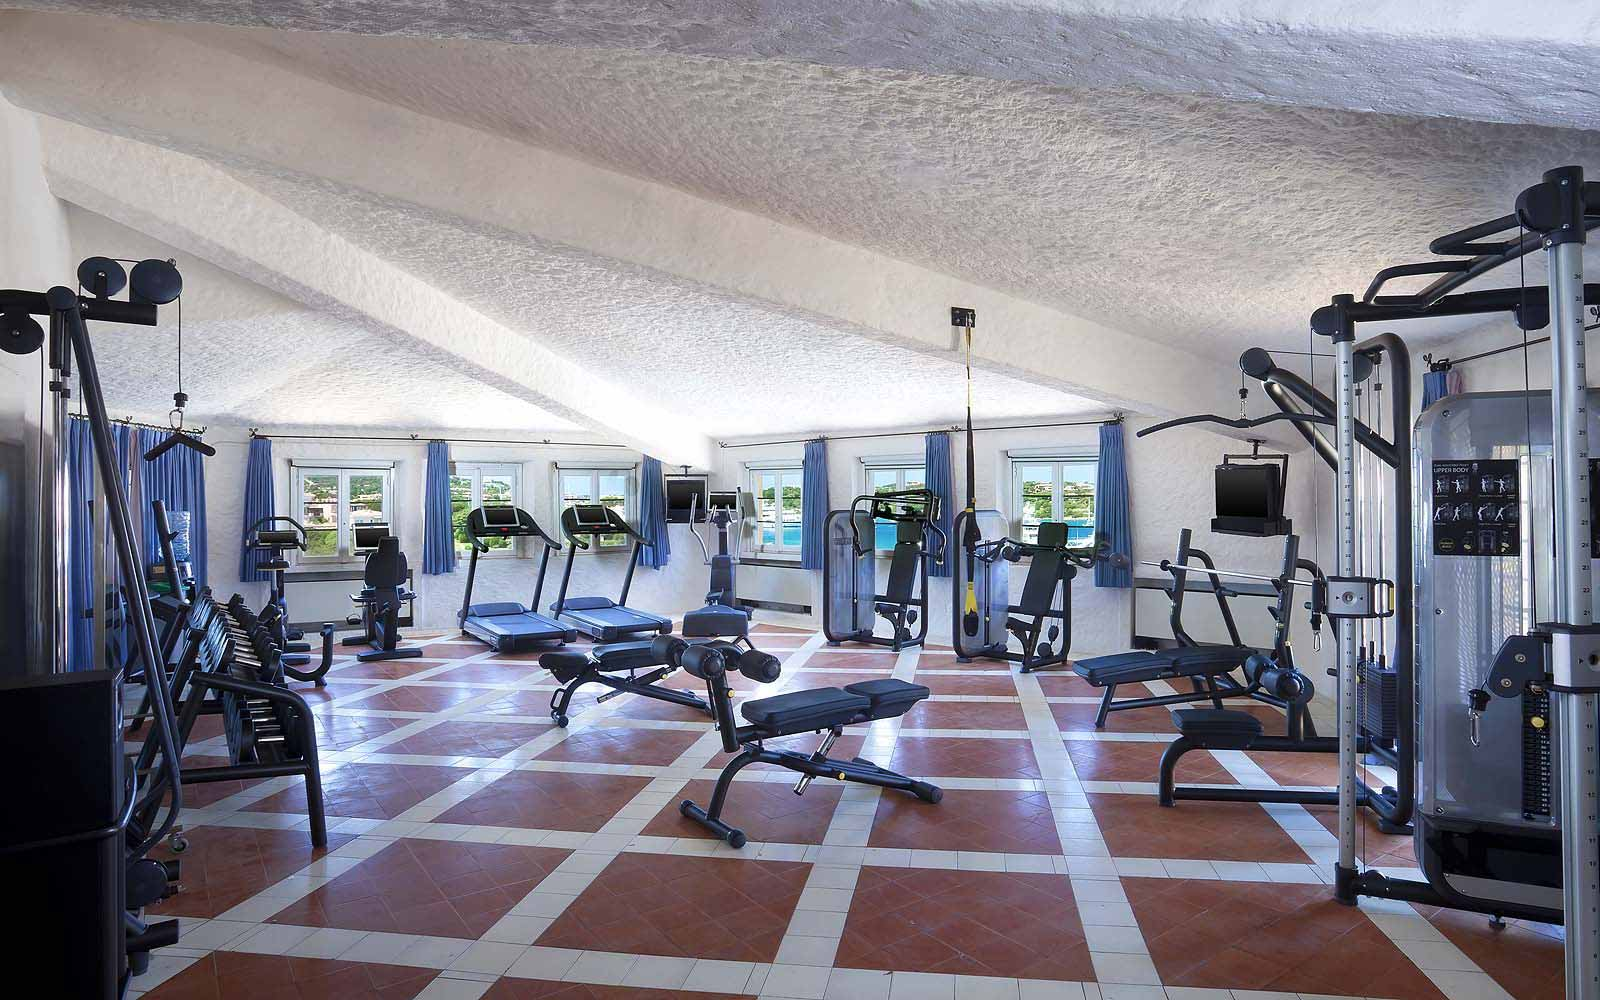 Fitness centre at the Hotel Cervo